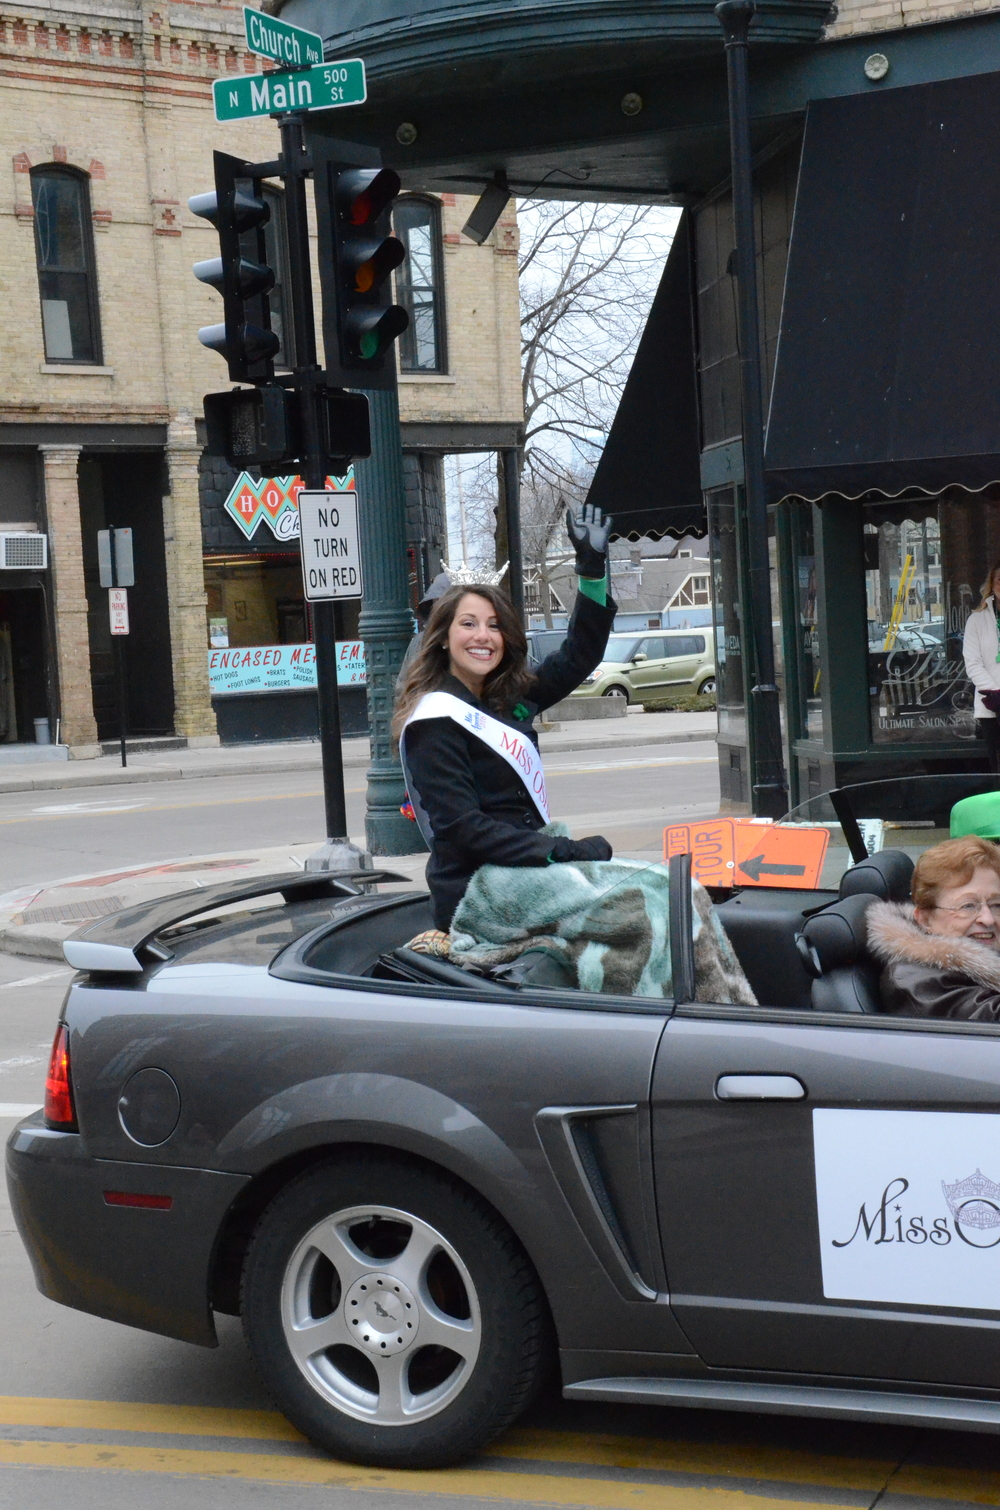 iss Oshkosh Serena Larie greets the crowd in a convertible. Larie won the crown on March 12.